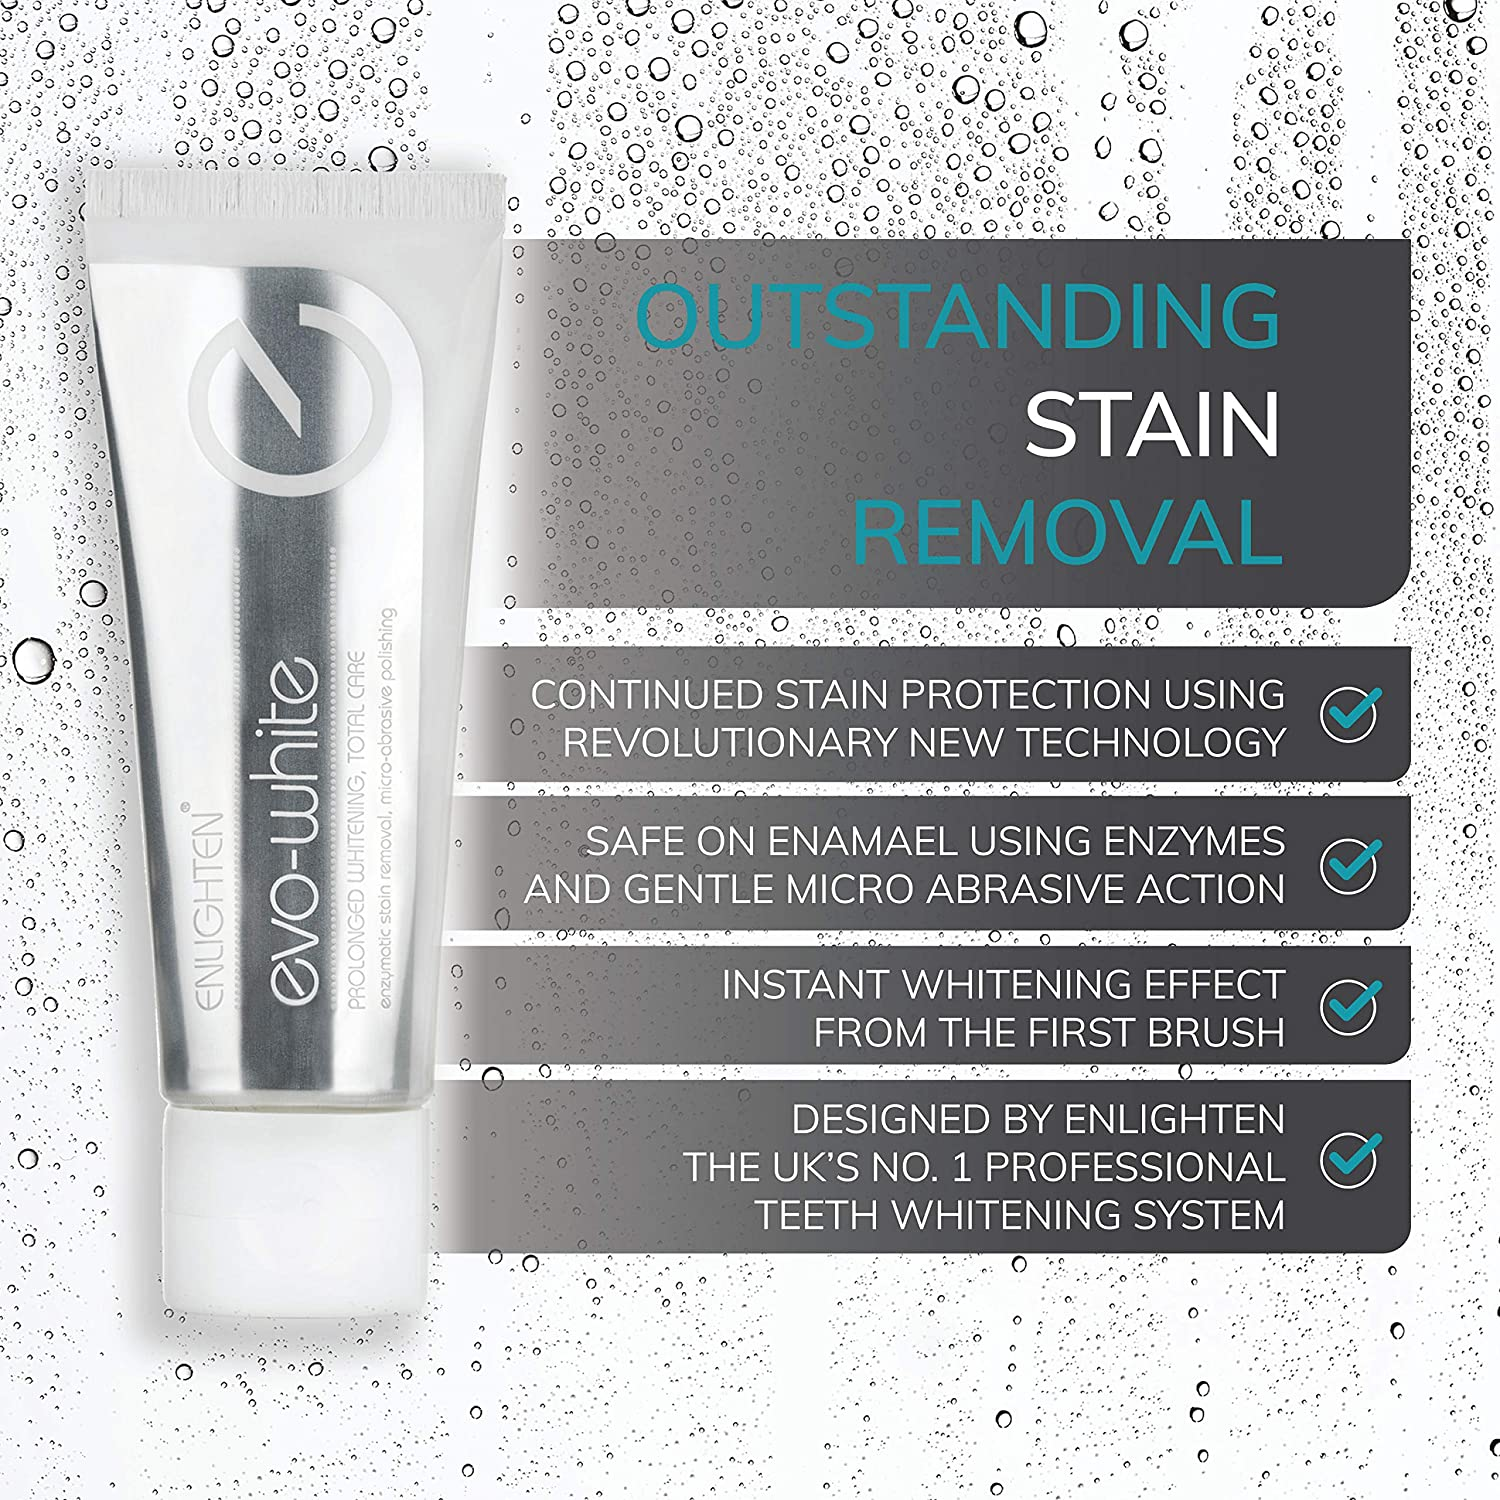 433757f75fe Evo White Teeth Whitening Toothpaste - by Enlighten | 75ml | Stain Removing  Formula to Make Teeth Look Whiter and Healthy Using Enamel Science  Technologies ...